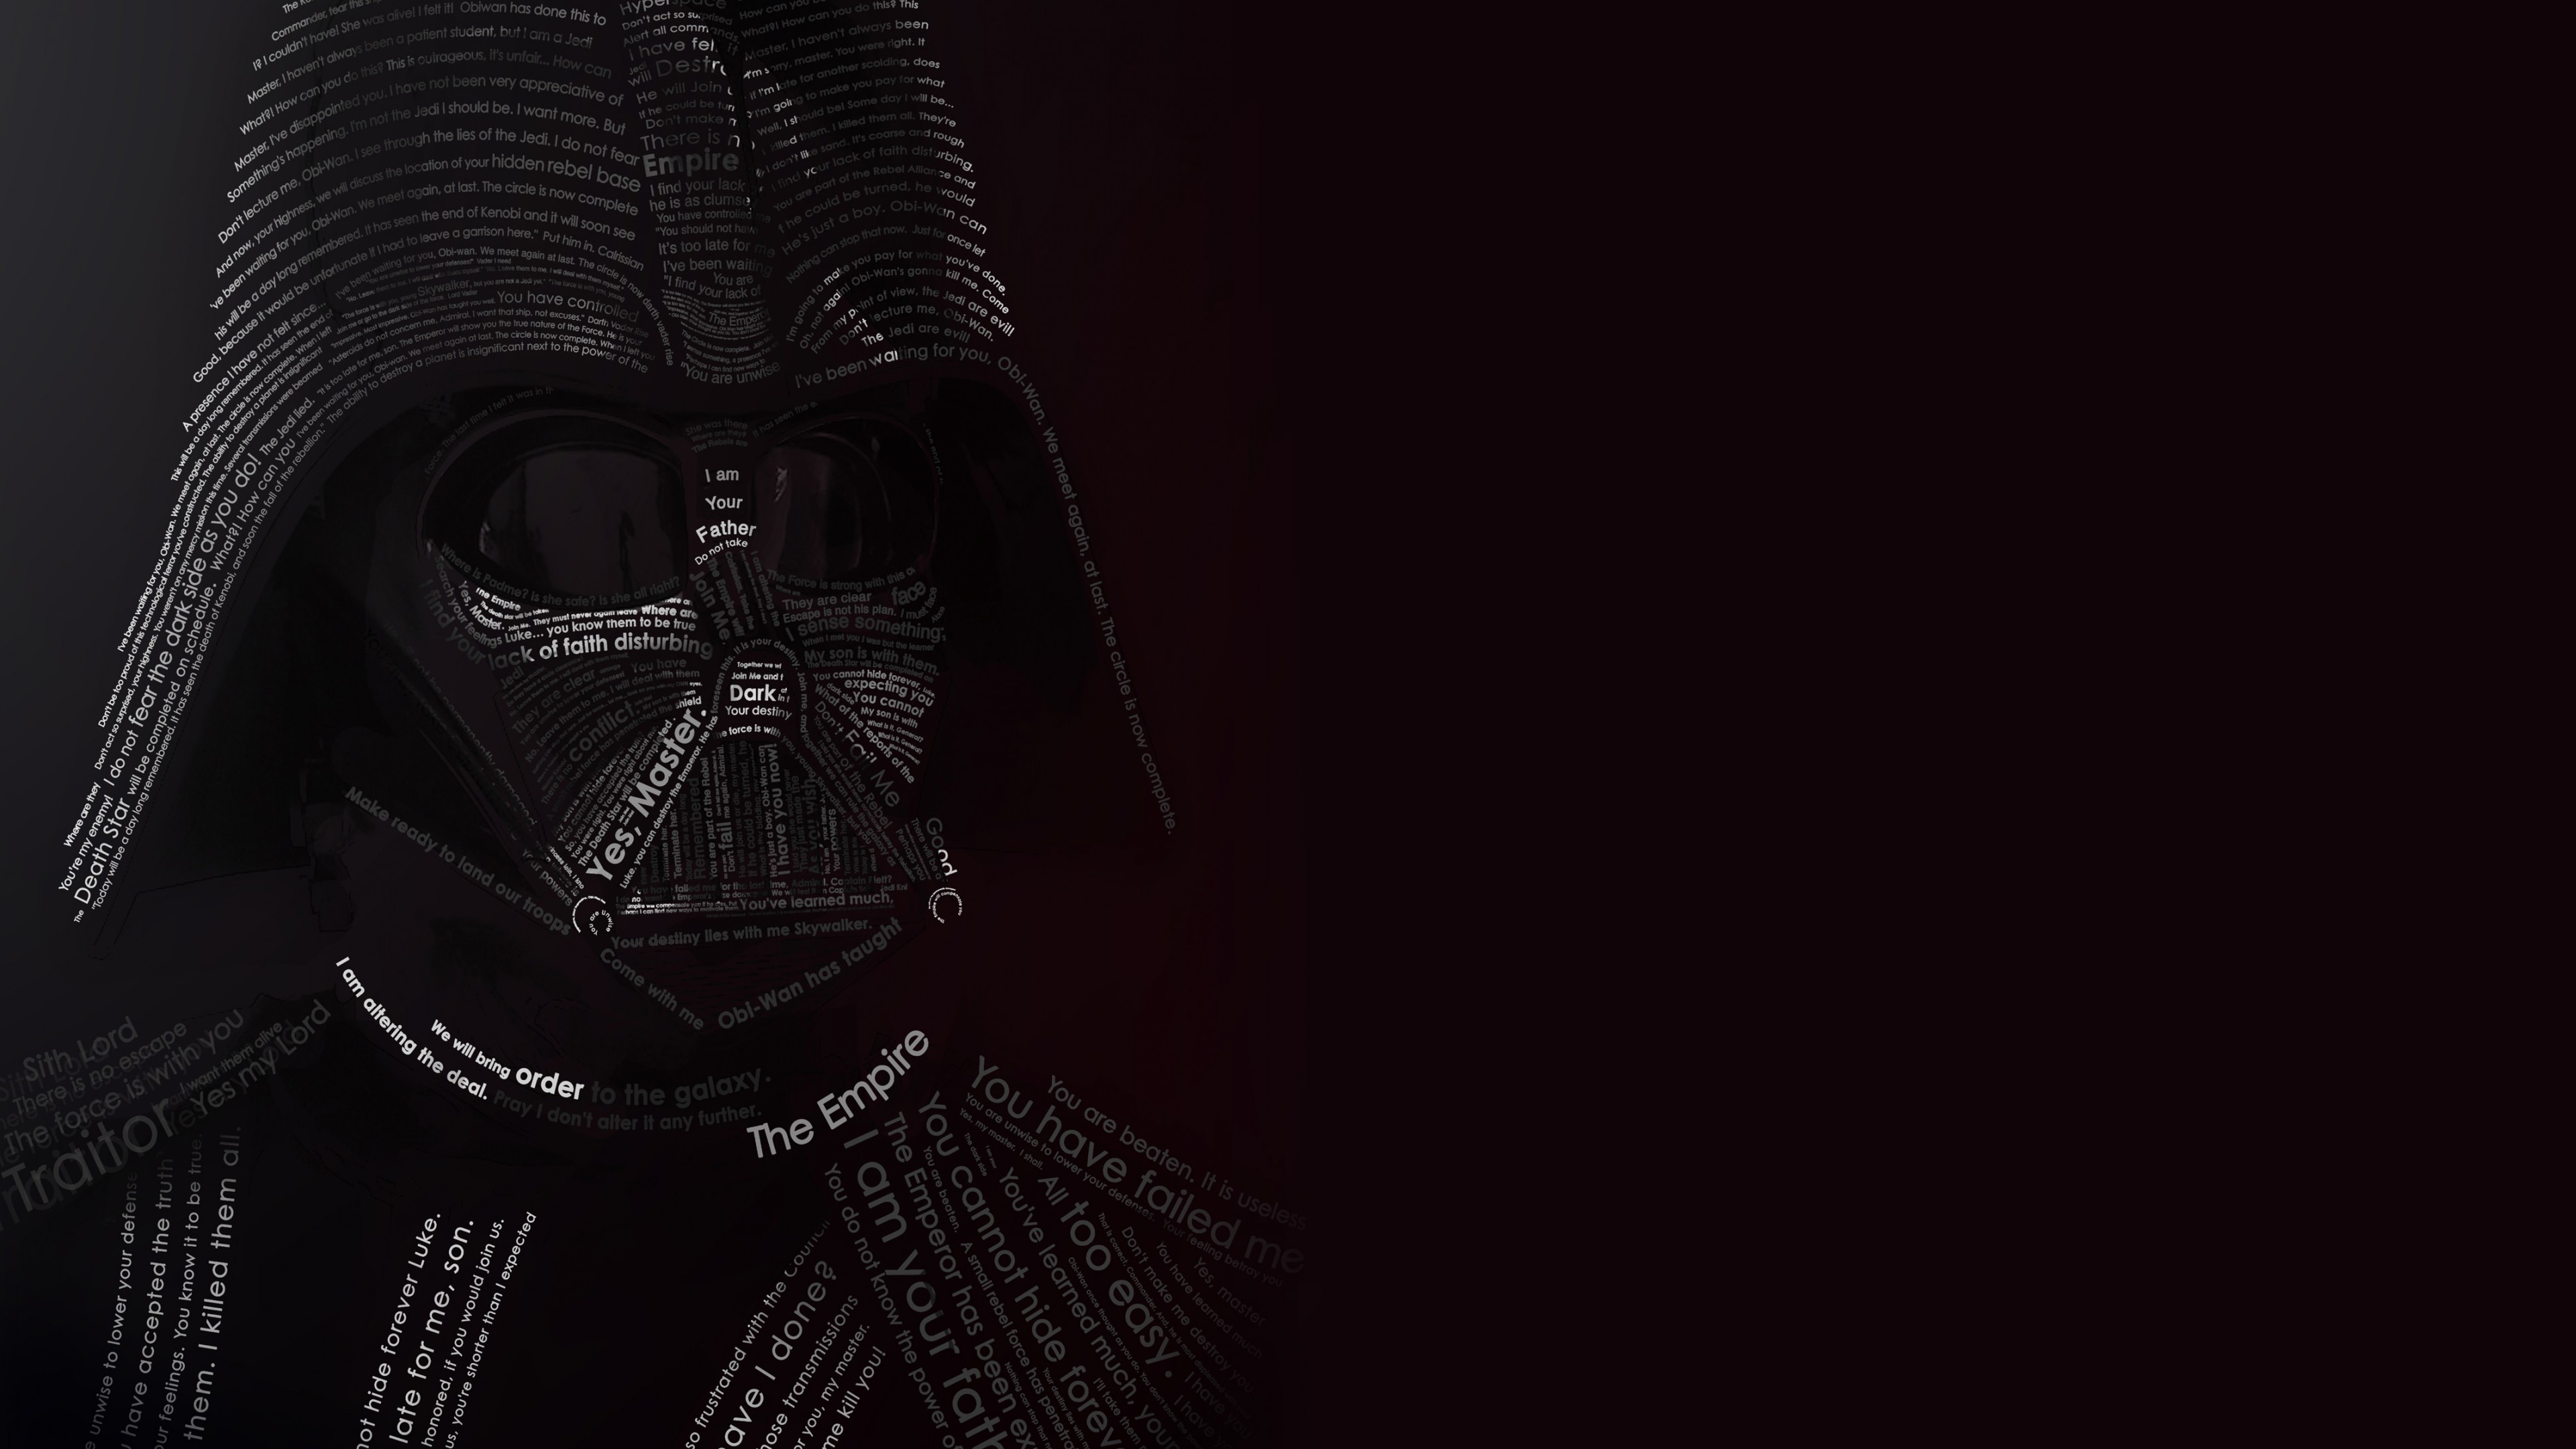 Darth vader typographic portrait 4k wallpaper Typography portrait